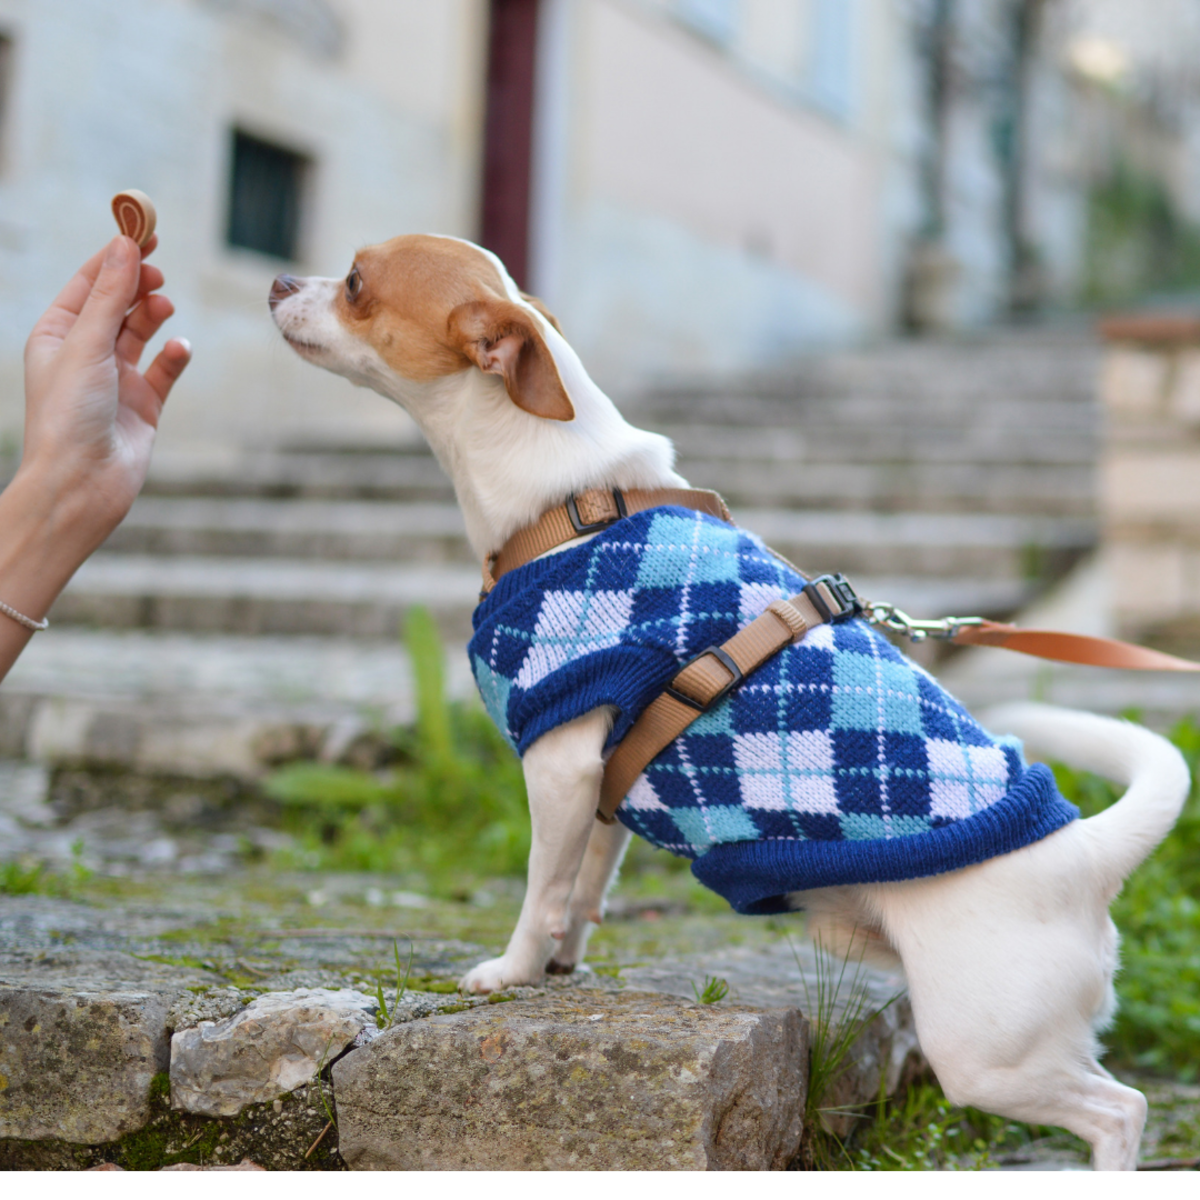 Learn how to approach dogs properly.